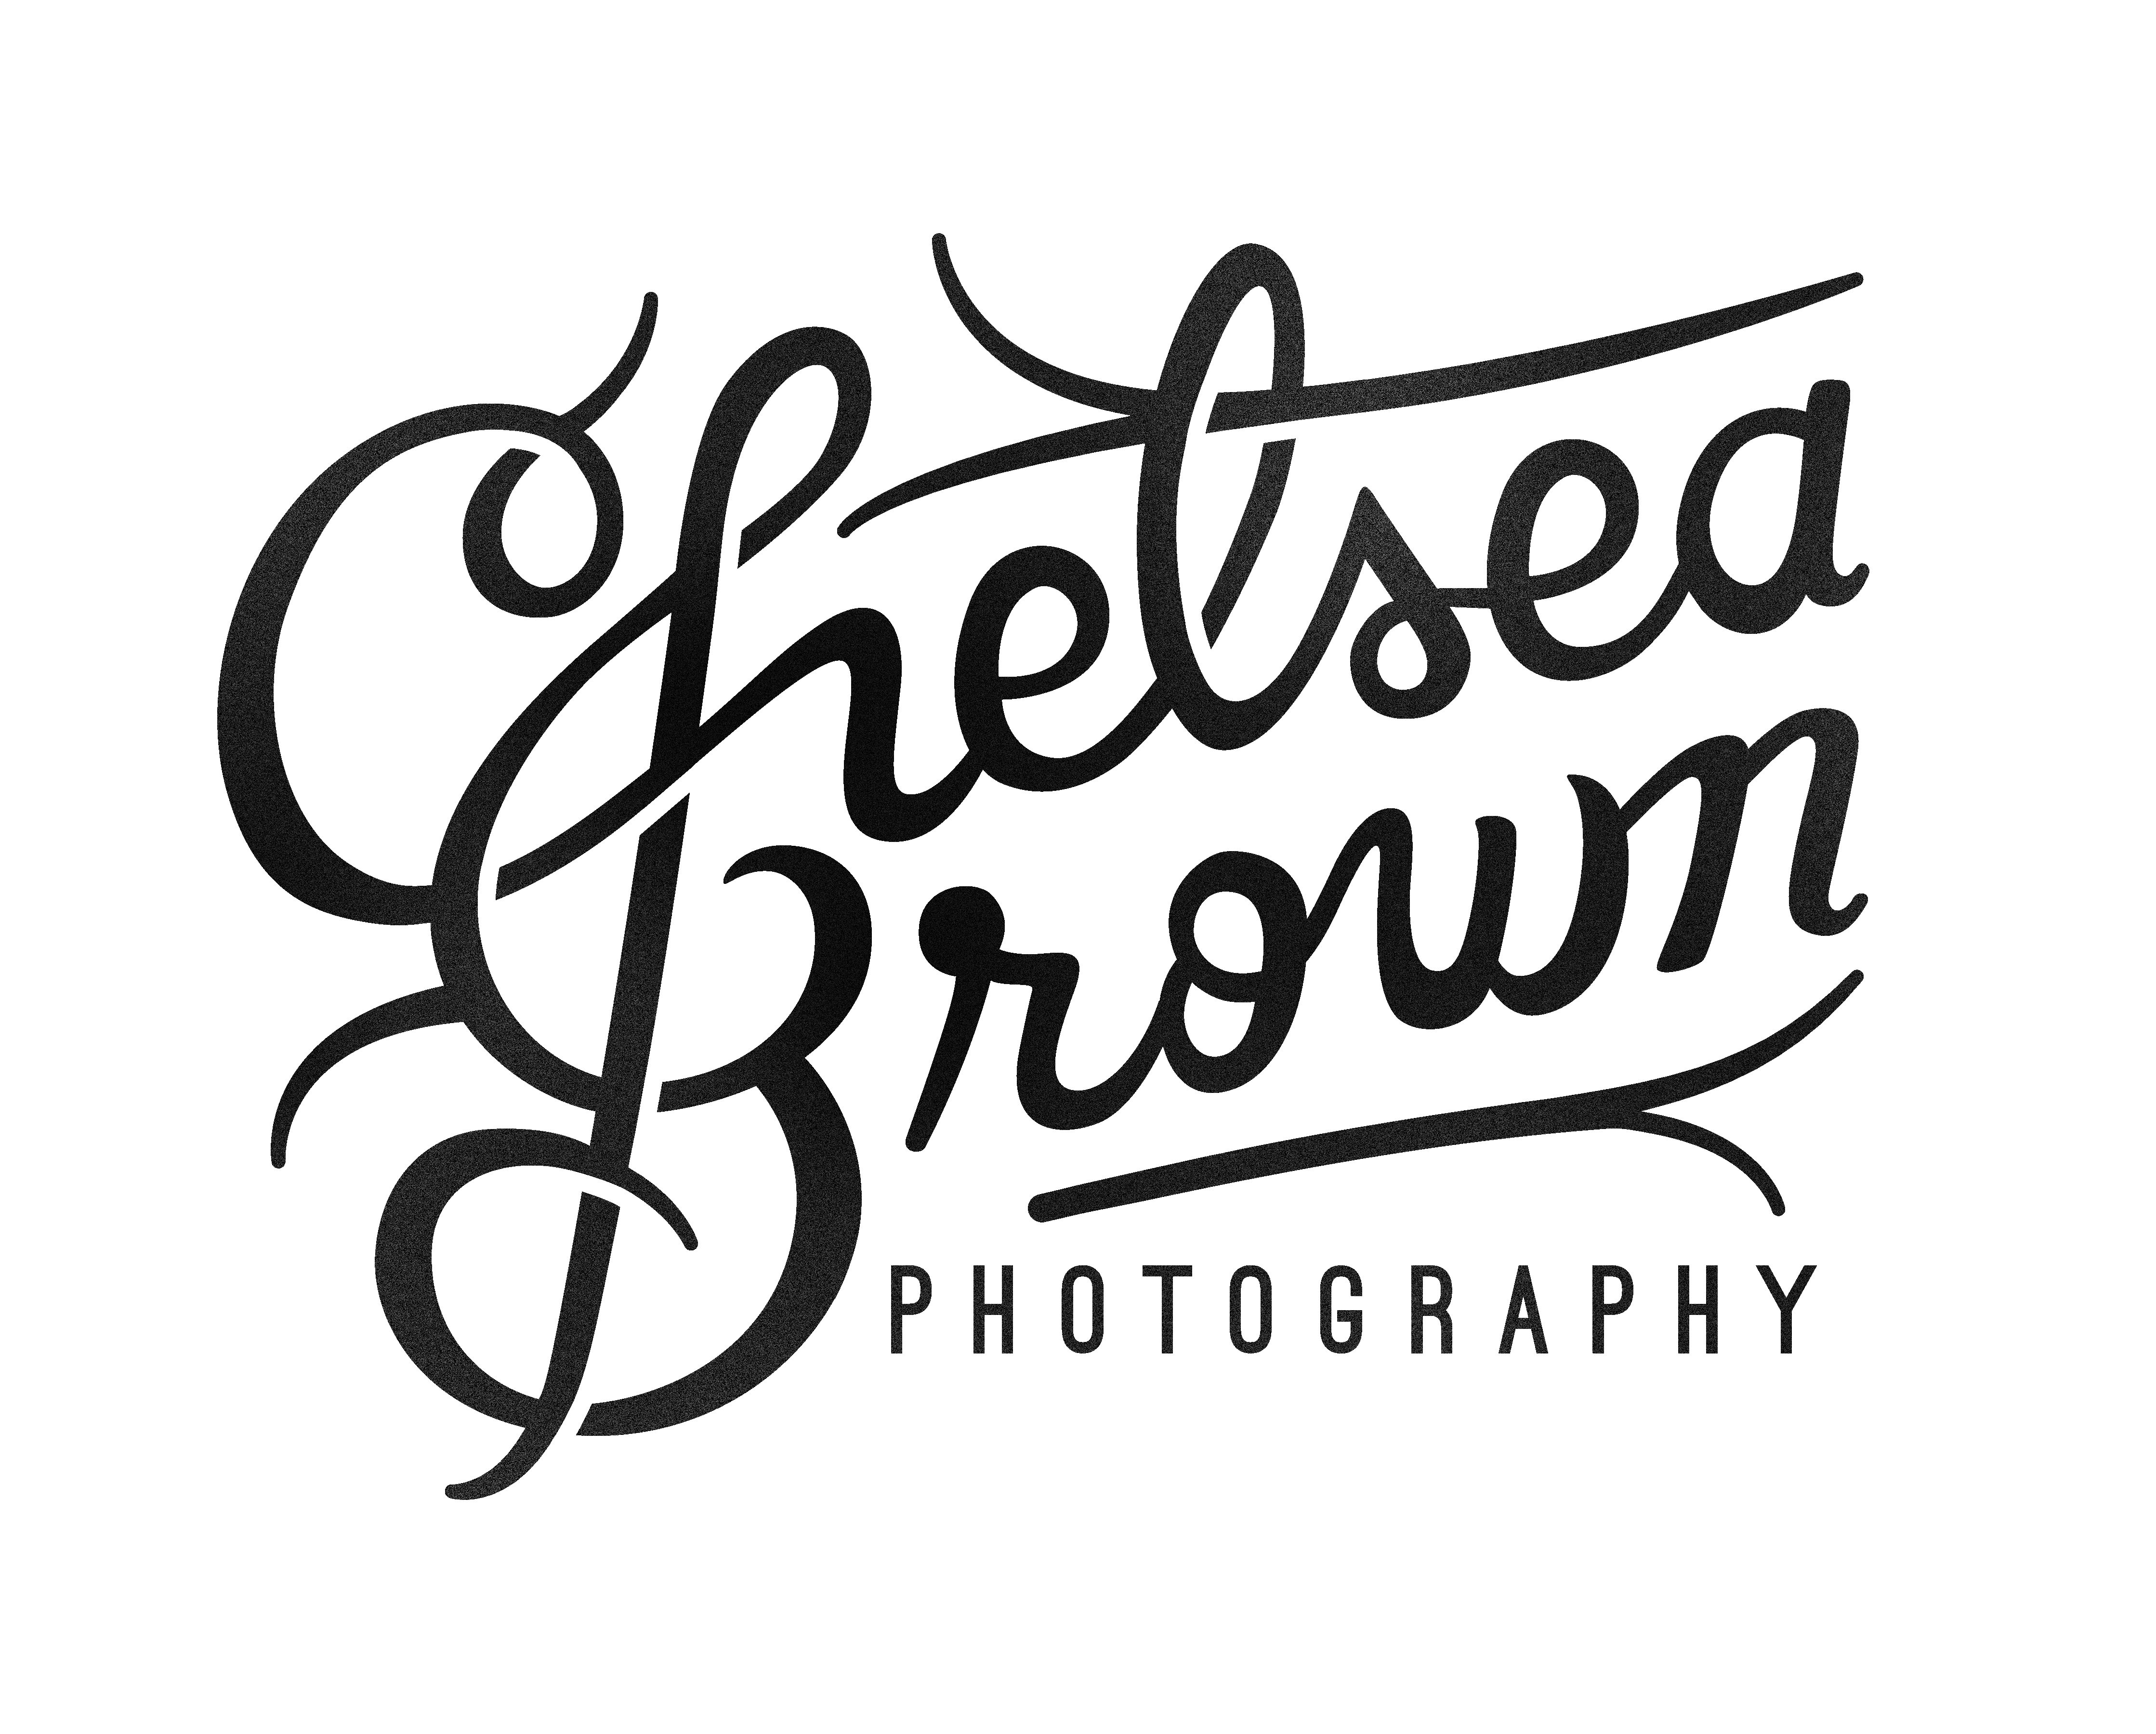 Chelsea Brown Photography